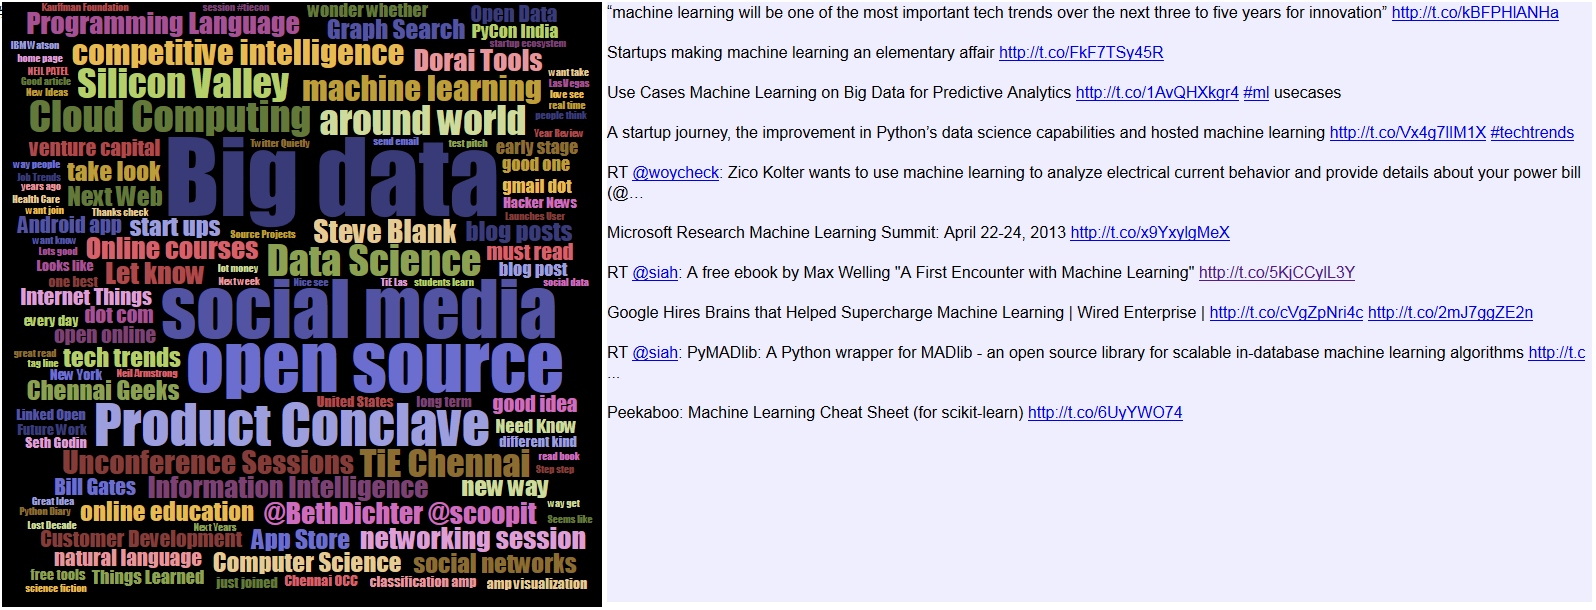 tweets_on_machine_learning